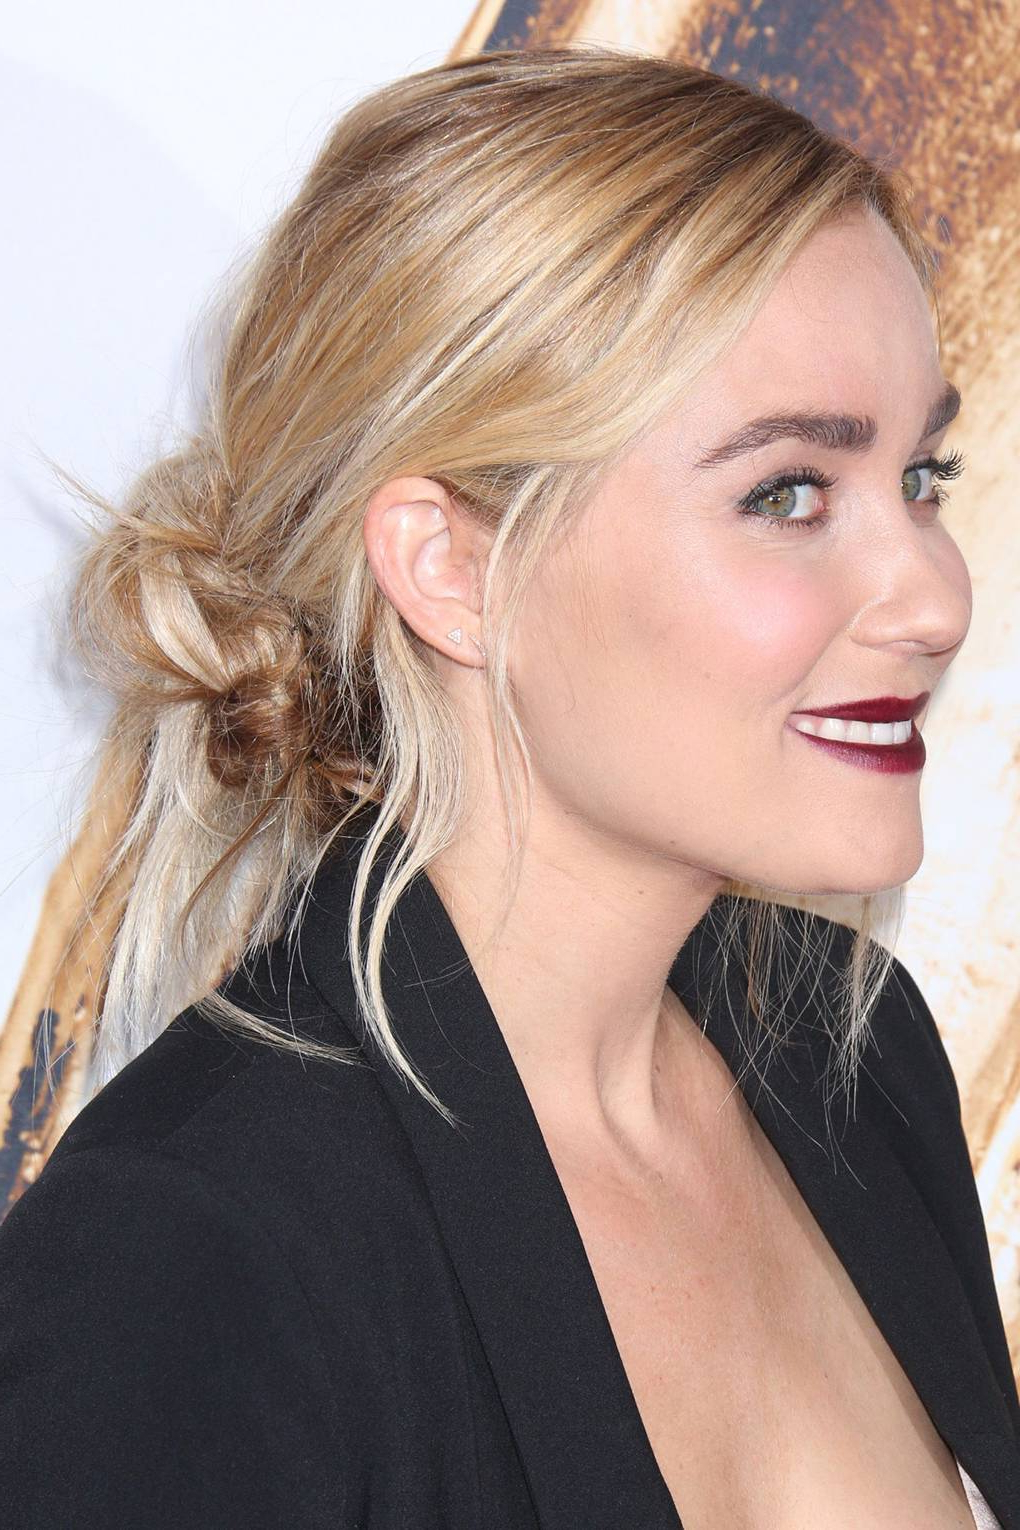 Lauren Conrad Best Haircuts & Hairstyles | Glamour Uk Pertaining To Lauren Conrad Short Hairstyles (View 19 of 25)